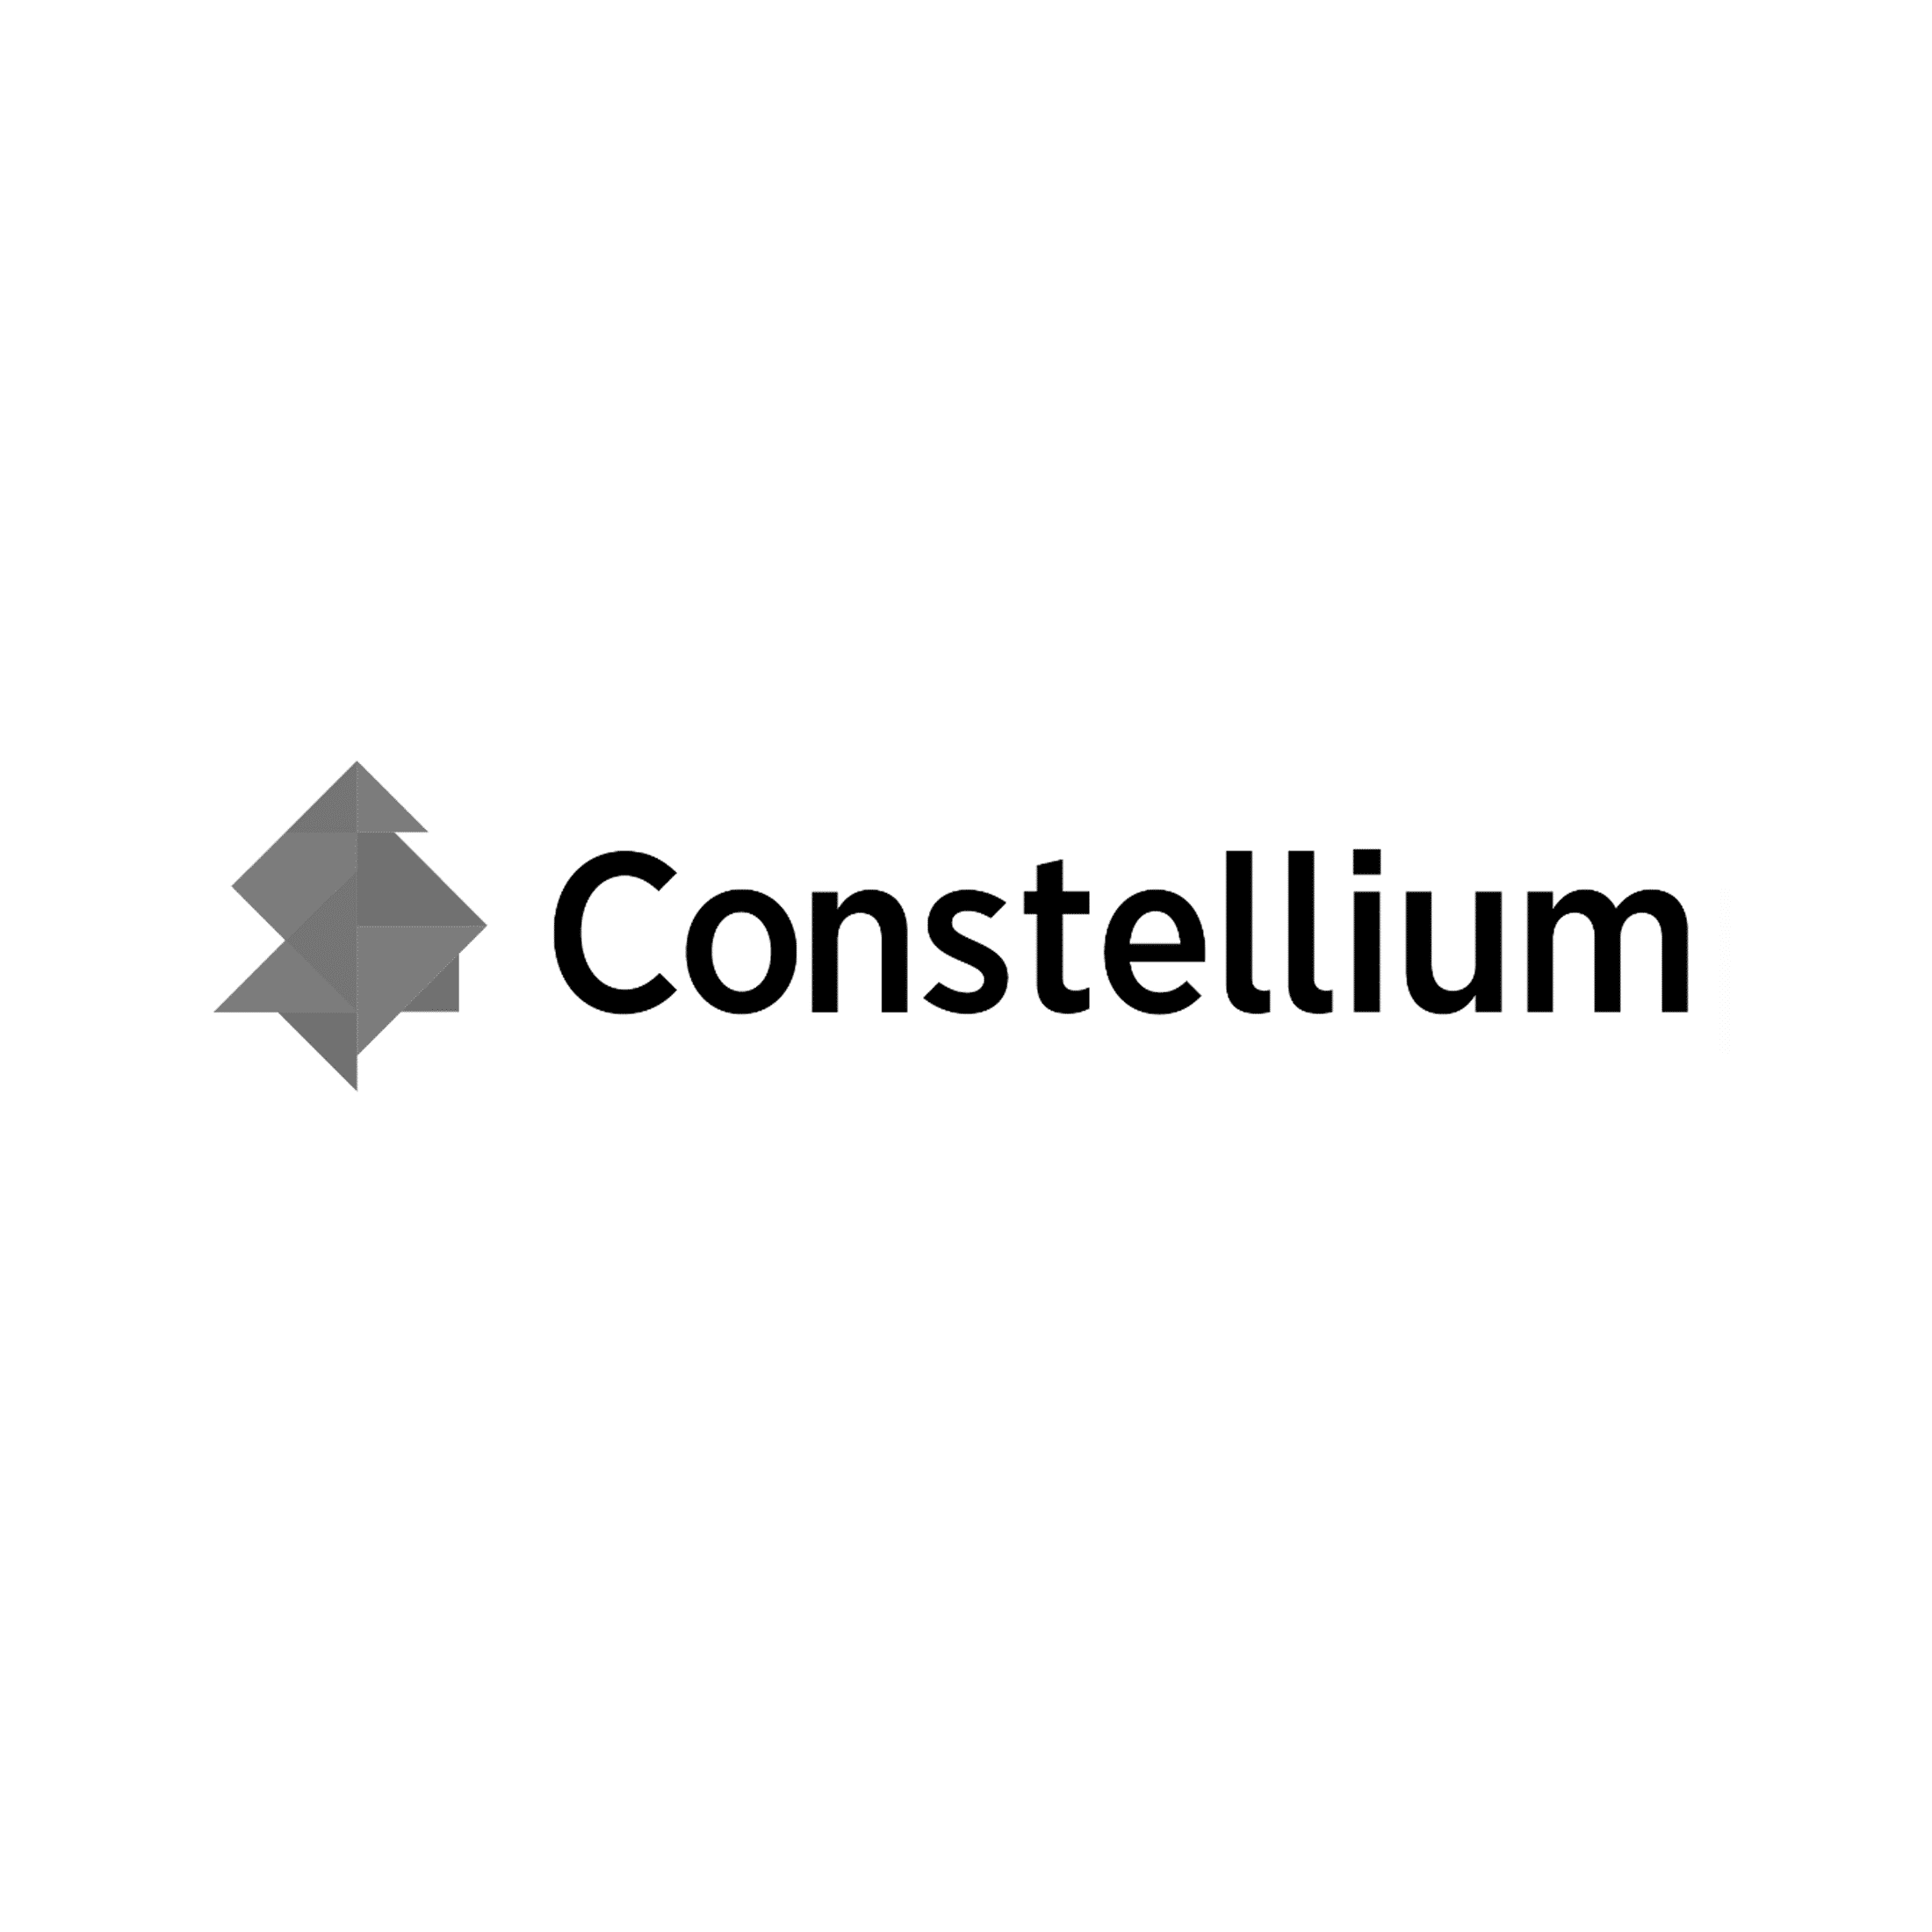 LOGO-ARTICLE-CONSTELLIUM